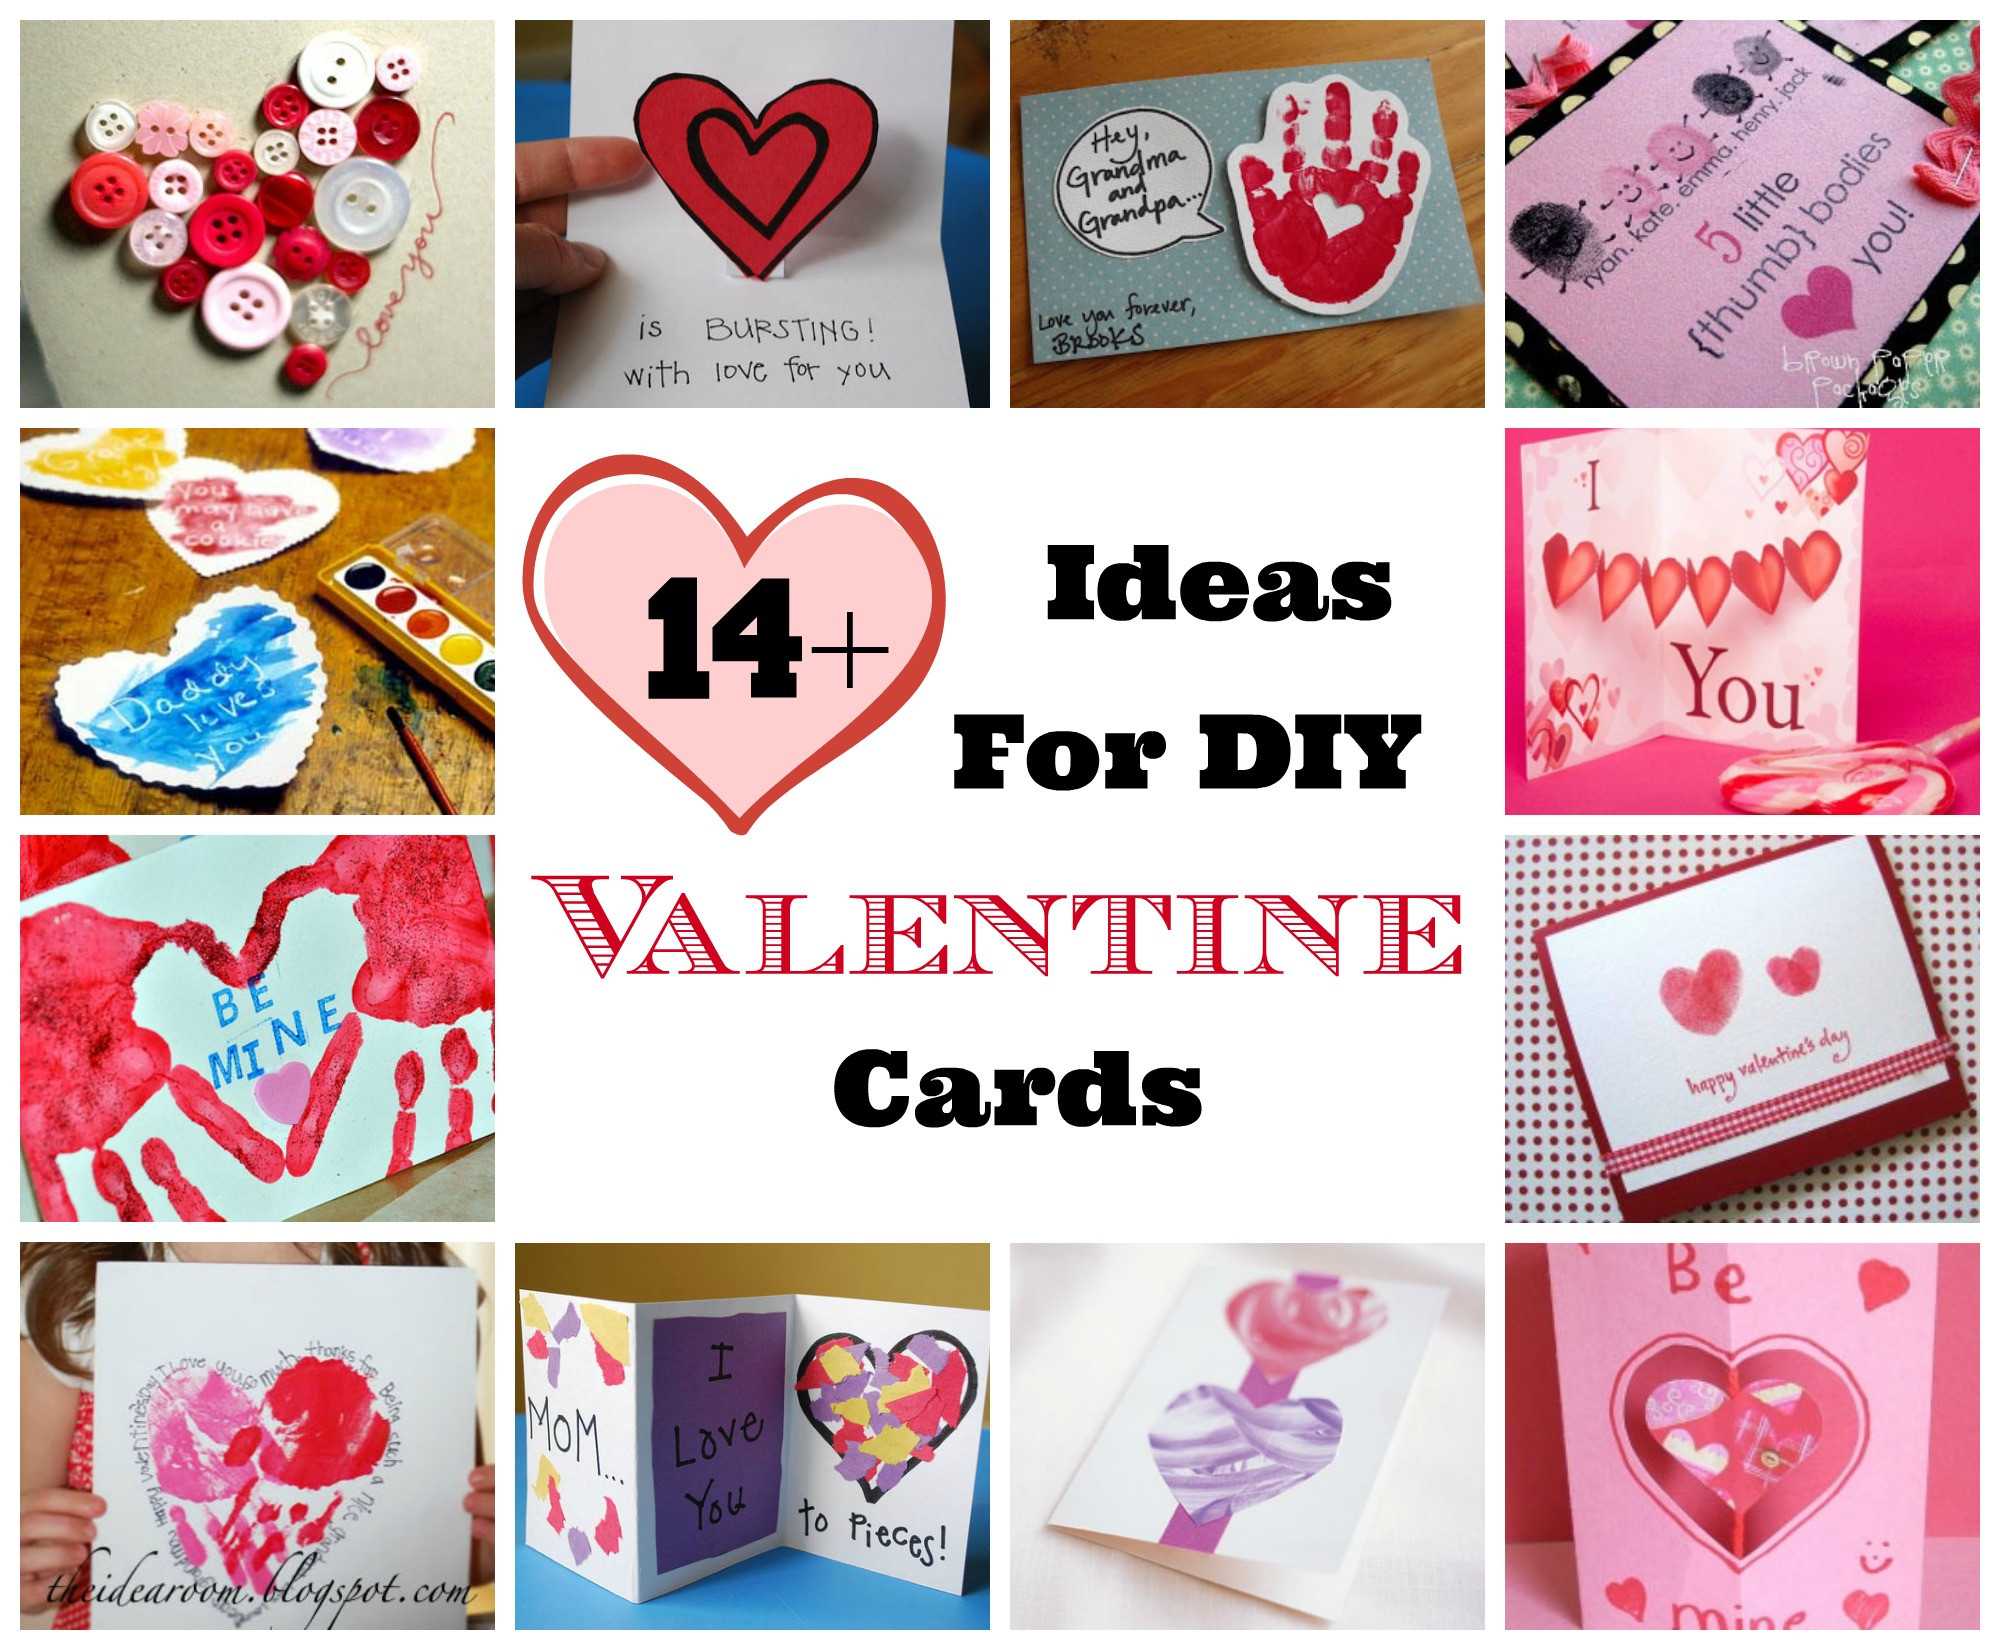 Best ideas about DIY Valentine Cards . Save or Pin Valentine's Day DIY Homemade Card Ideas Now.